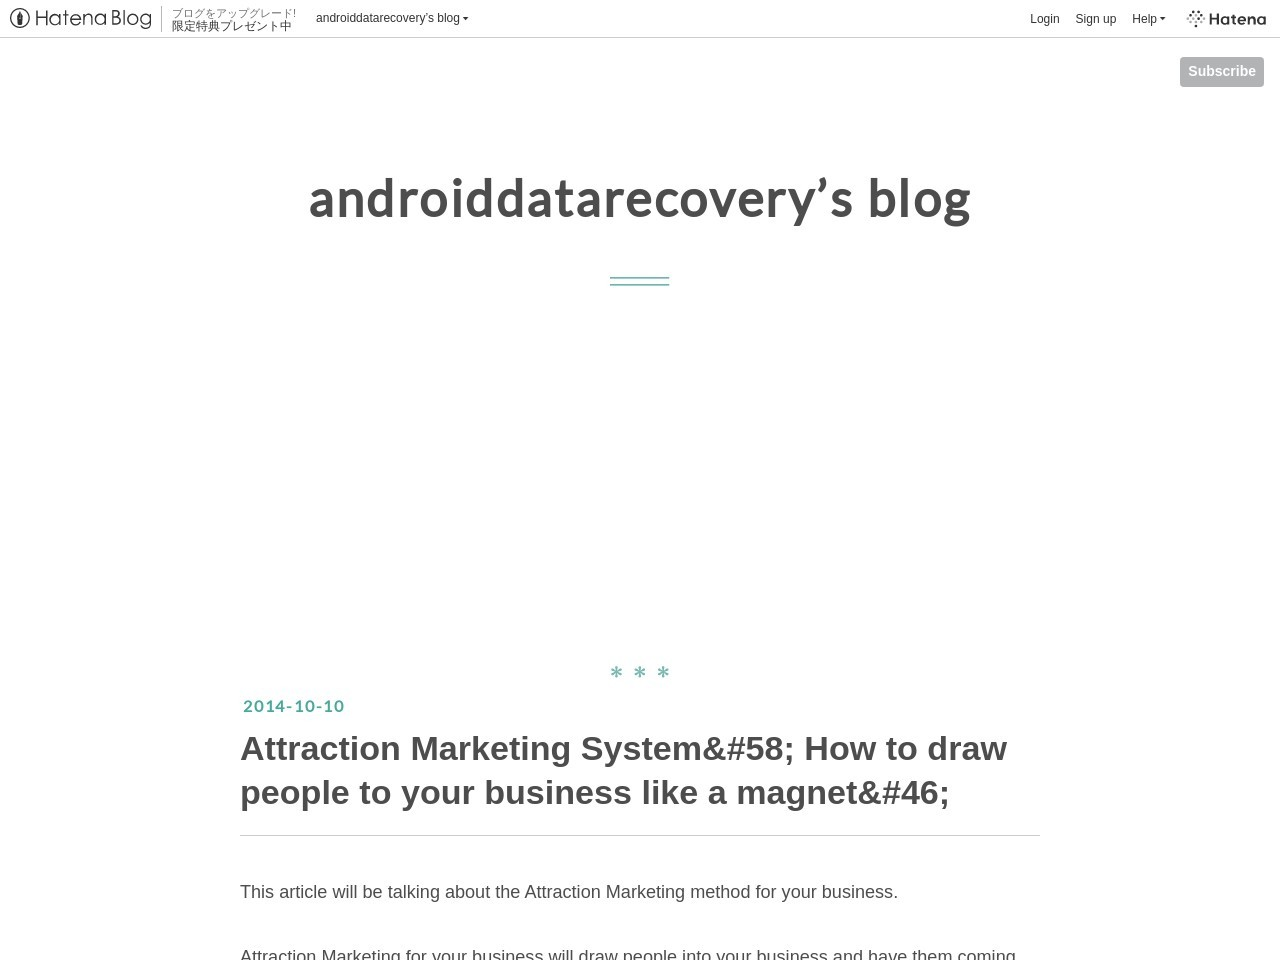 Attraction Marketing System&#58 – androiddatarecovery's blog